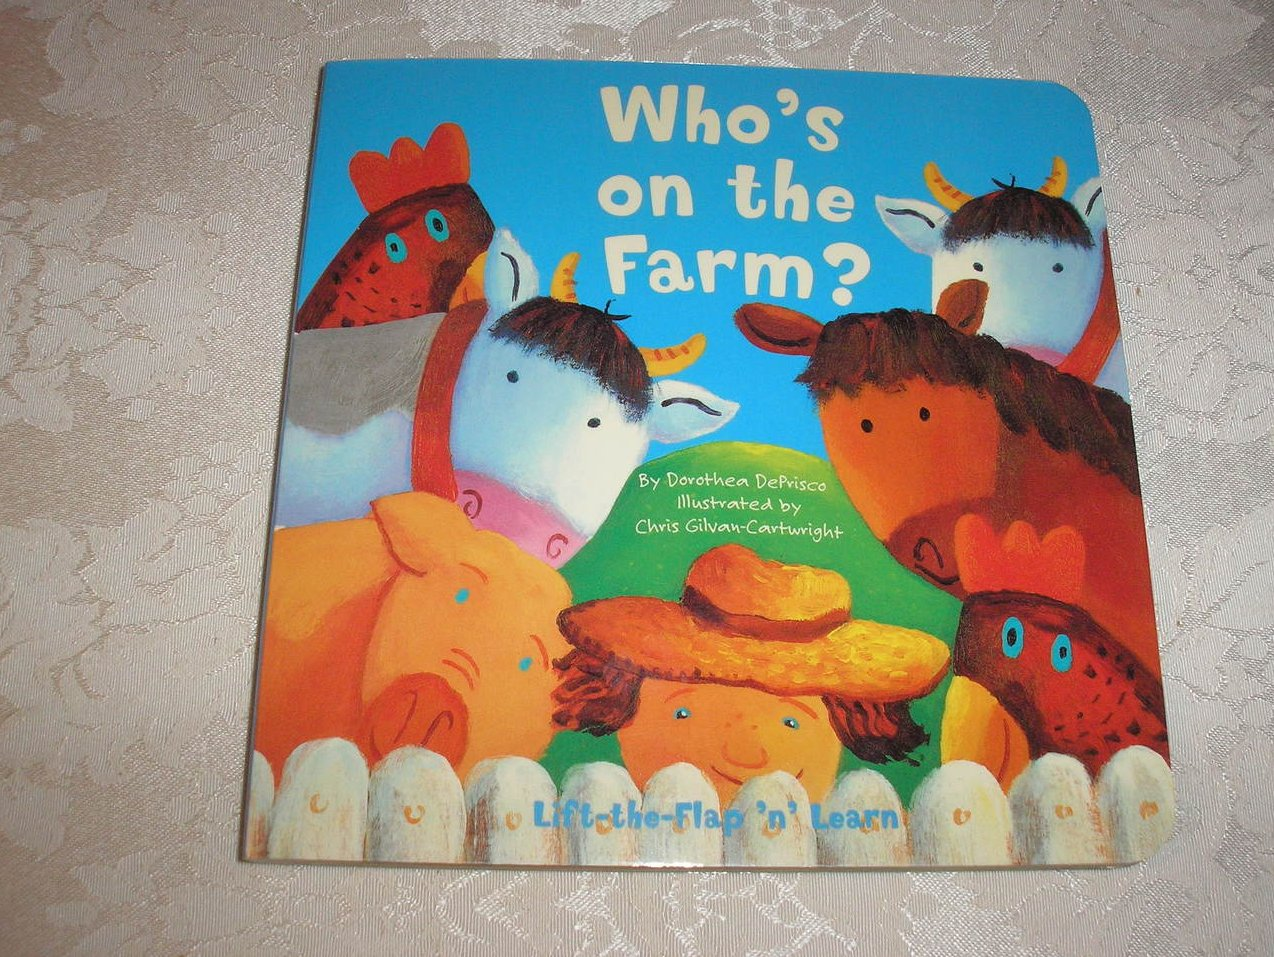 Who's on the Farm? Dorothea DePrisco brand new lift the flap board book